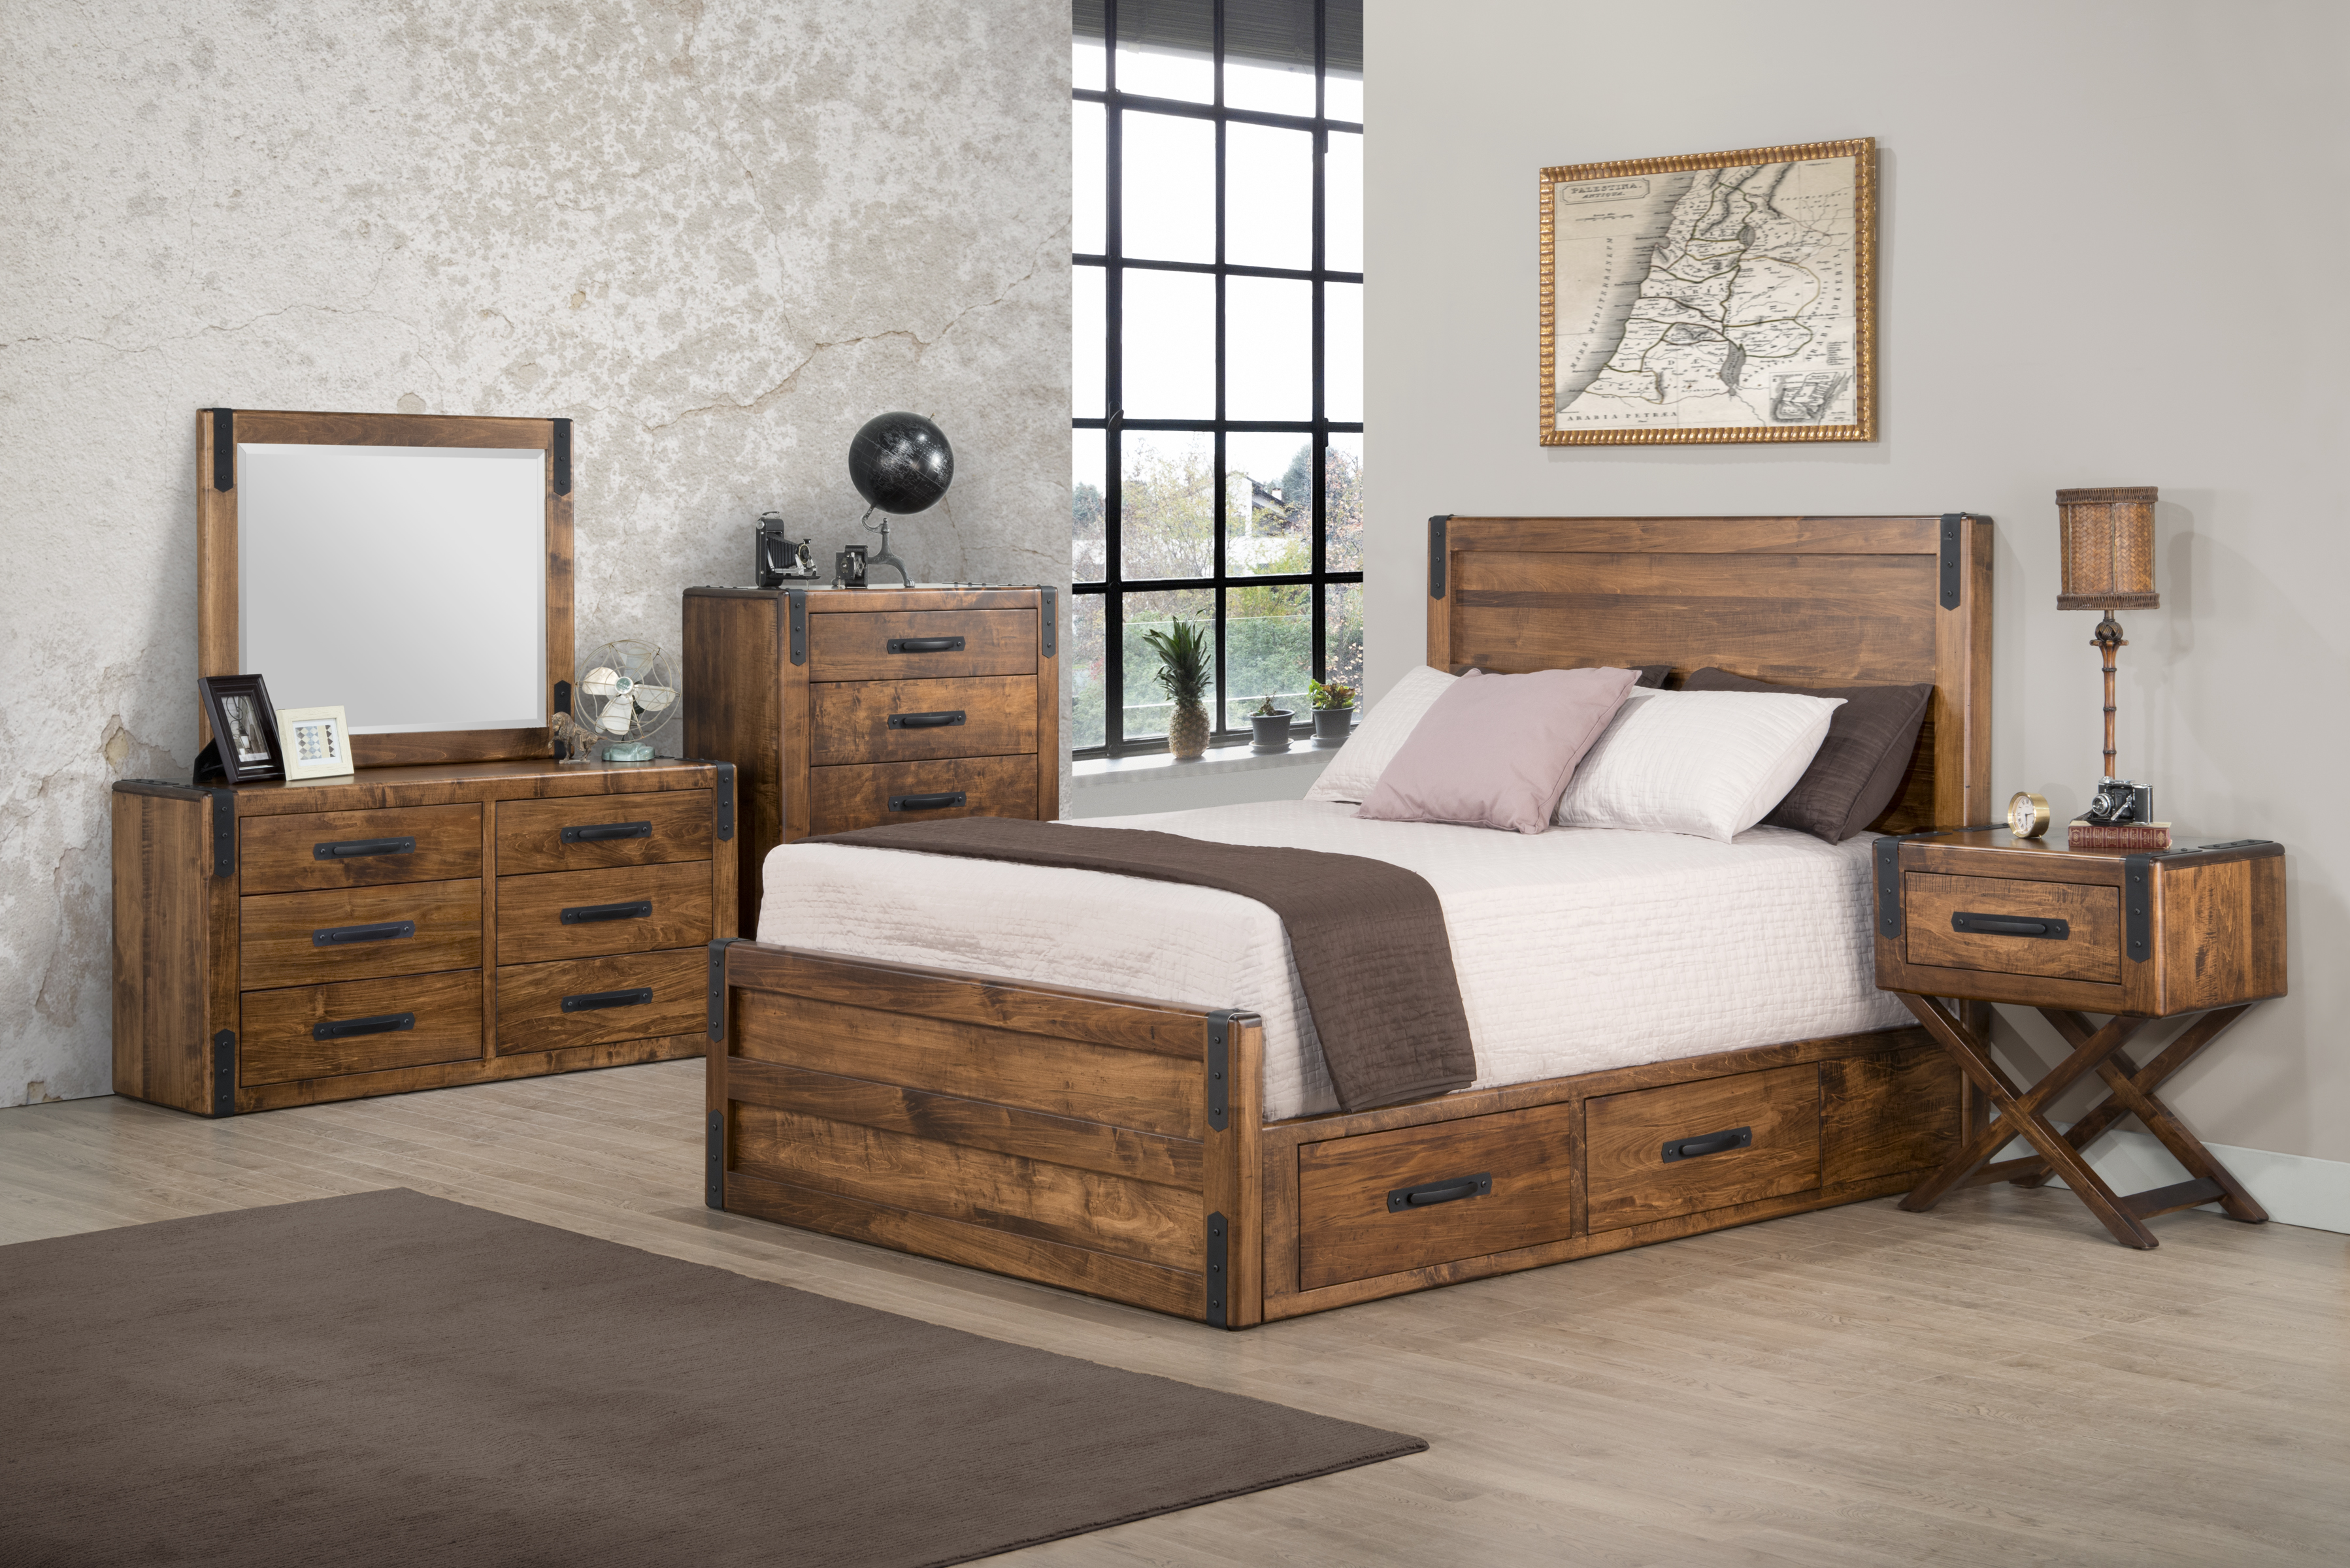 collections kane set bedrooms queen bedroom room old world products bed furniture s